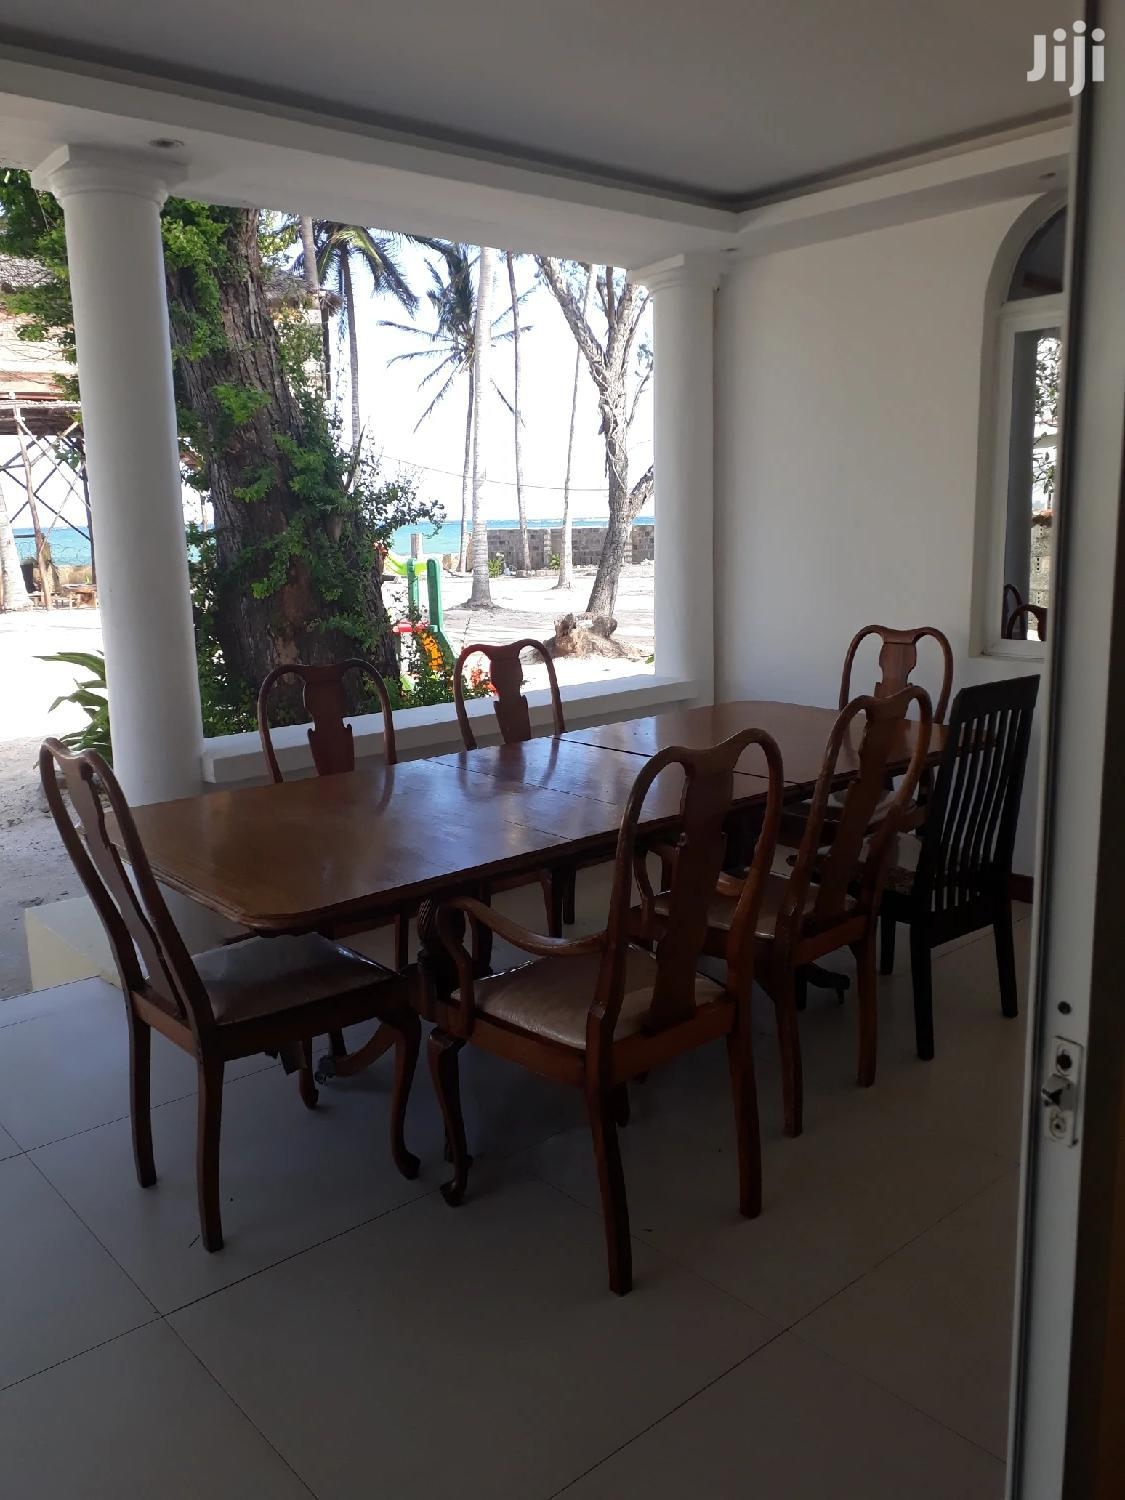 To Let 2 Bedrooms Fully Furnished Nyali | Houses & Apartments For Rent for sale in Nyali, Mombasa, Kenya